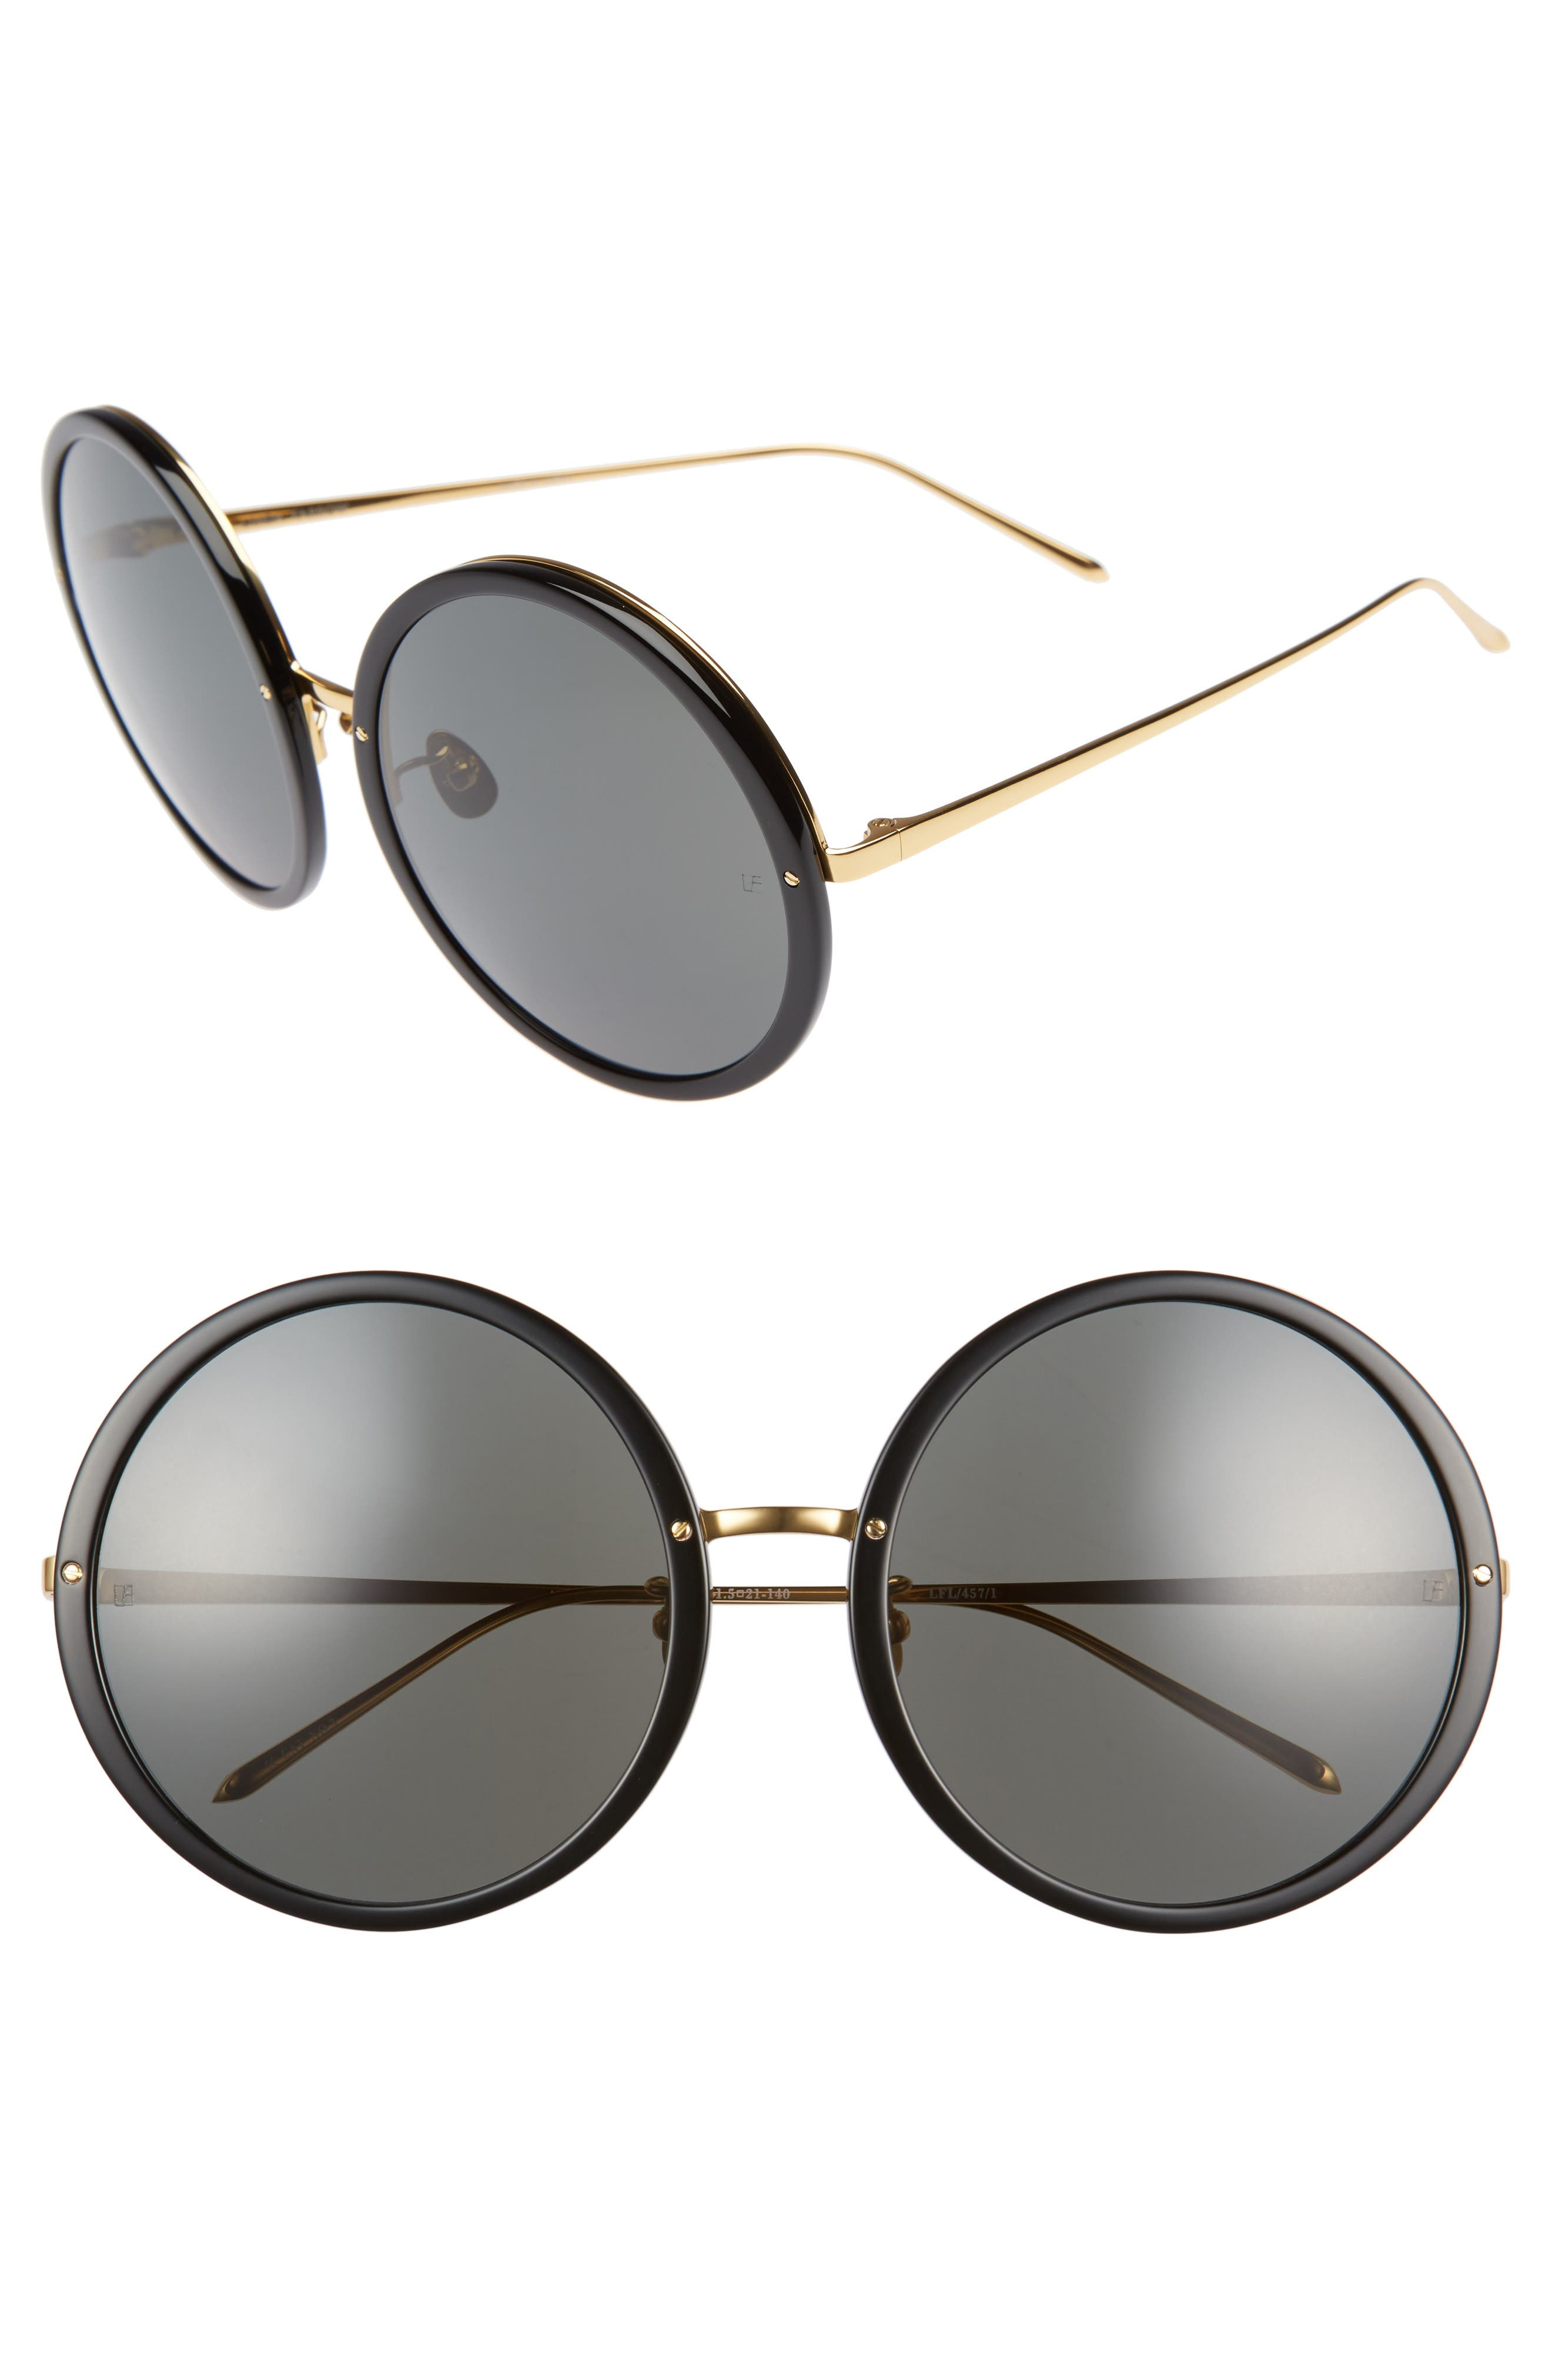 61mm Round 18 Karat Gold Trim Sunglasses,                         Main,                         color, Black/ Yellow Gold/ Grey